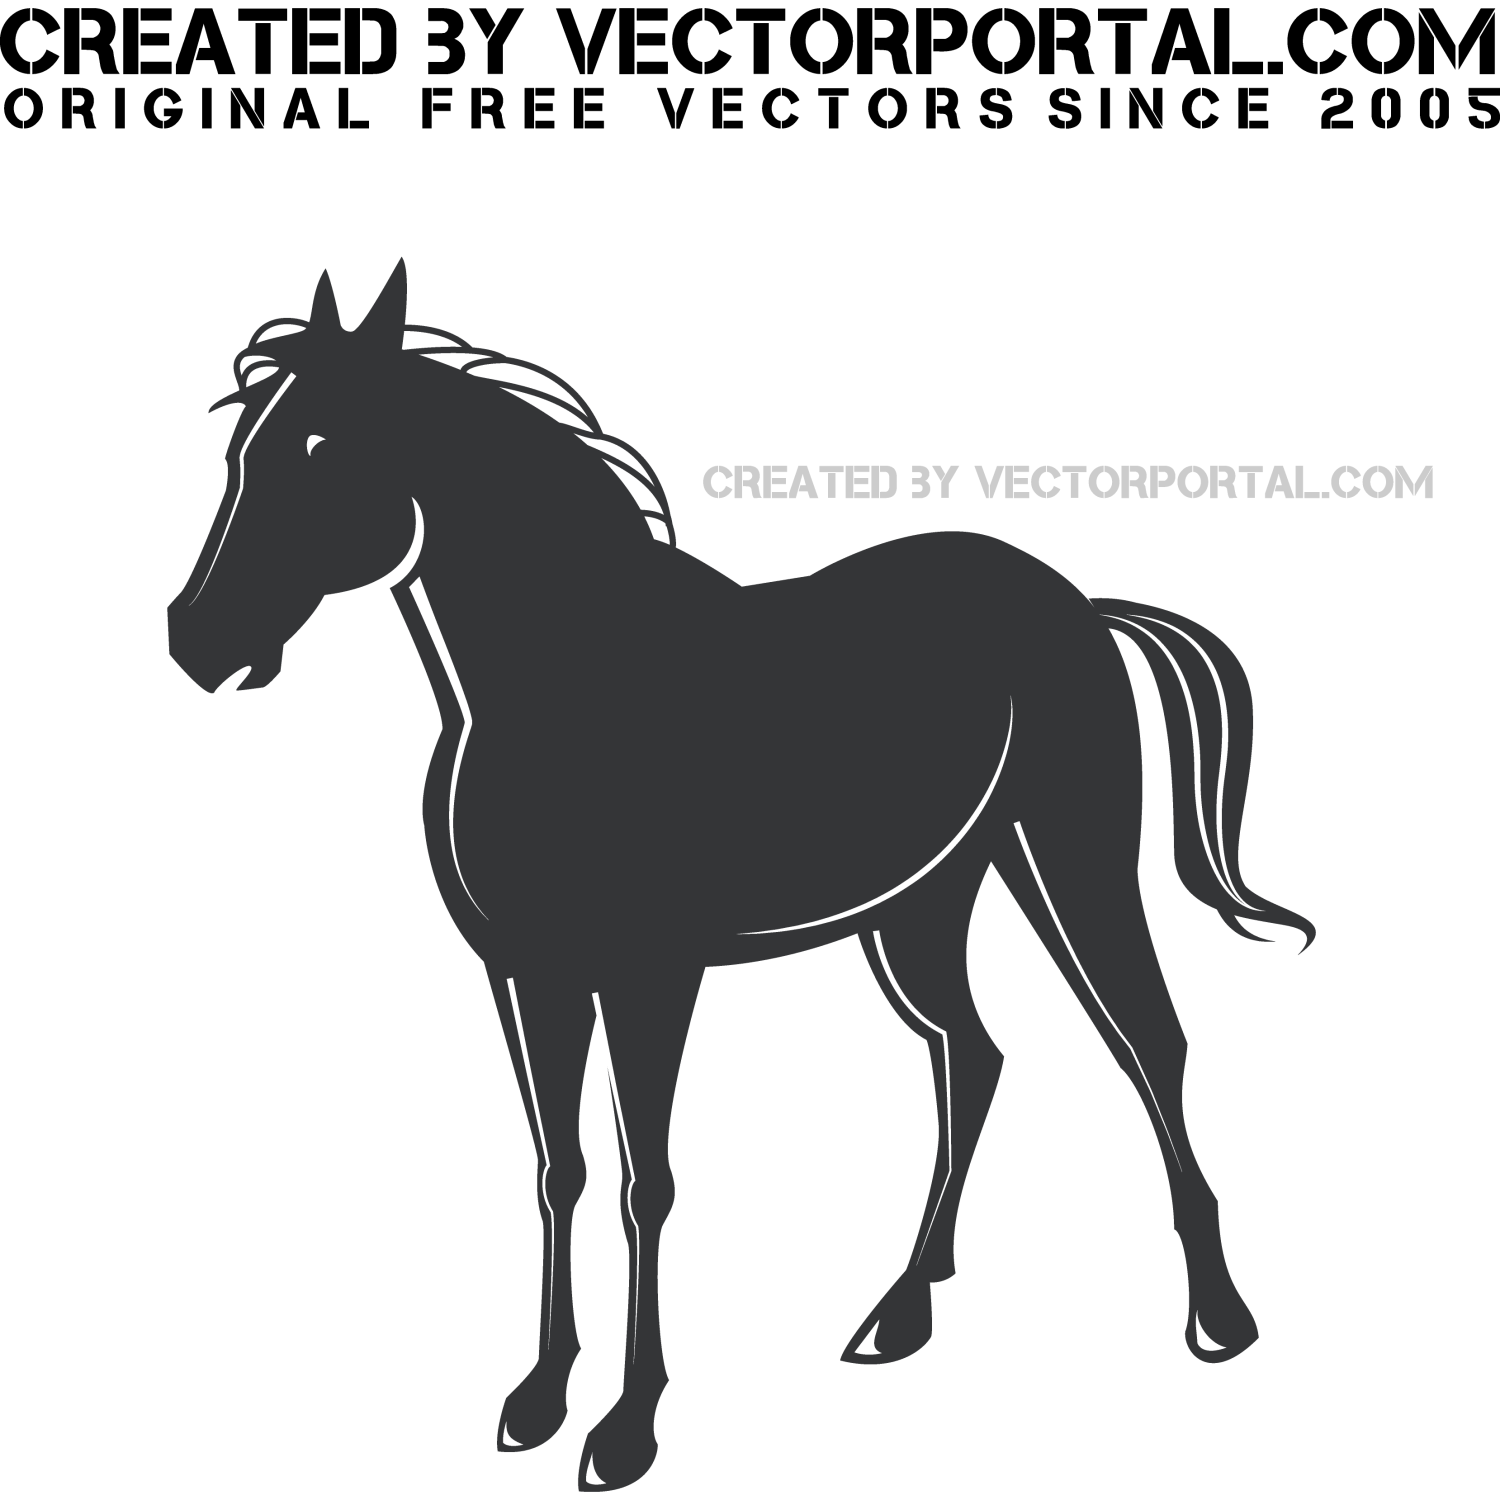 Vector illustration of a black horse